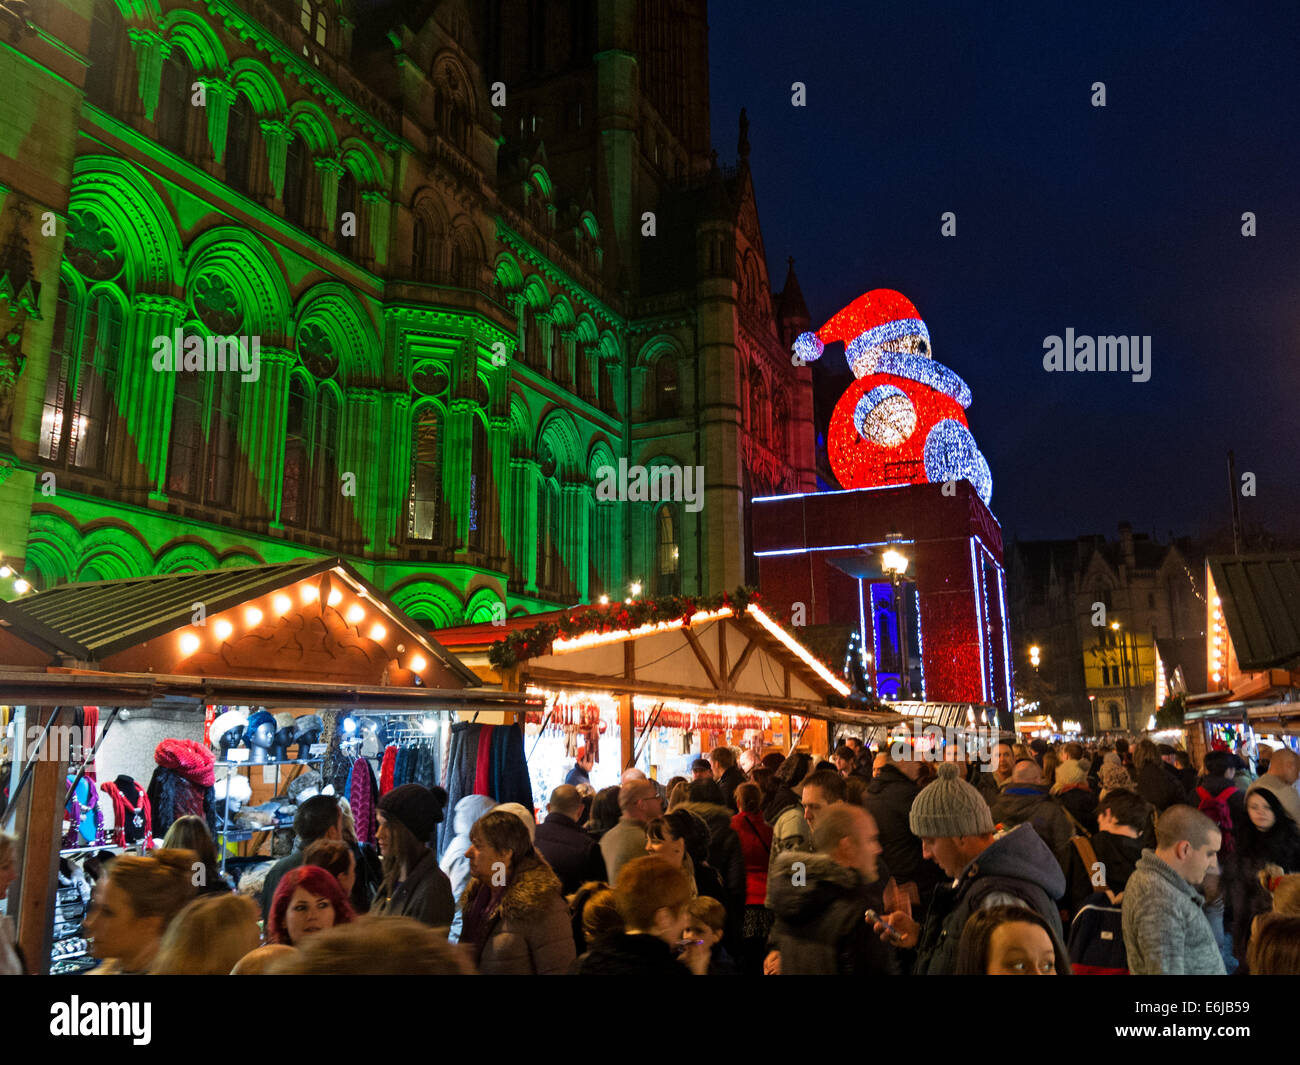 at,dusk,northwest,north,west,England,GB,Great,Britain,GreatBritain,stalls,continental,German,European,townhall,town,hall,festive,tourist,attraction,popular,bringing,together,of,people,party,manc,Mancunian,distinct,character,and,atmosphere,Gotonysmith,lights,nightlights,father,xmas,Attracting,shoppers,from,all,over,the,UK,and,beyond,the,market,has,put,Manchester,city,centre,firmly,on,the,Christmas,map,–,the,Christmas,Market,has,become,not,just,a,fabulous,place,to,shop,but,also,a,hugely,popular,leisure,destination,in,its,own,right.,No,Mancunian,winter,is,complete,without,a,wander,through,the,chalet-lined,streets,of,the,markets.,The,Christmas,Markets,are,located,in,different,spaces,around,the,city,each,with,its,own,distinct,character,and,atmosphere,Albert,Square,|,Brazennose,Street,|,St,Anns,Square,|,Exchange,Street,|,New,Cathedral,Street,|,The,Corn,Exchange,|,Corporation,Street,The,array,of,over,300,stalls,is,mind-boggling,with,mouthwatering,delicacies,from,all,over,Europe.,The,choice,is,getting,bigger,and,bigger,and,includes,gifts,crafts,jewellery,clothes,toys,Buy